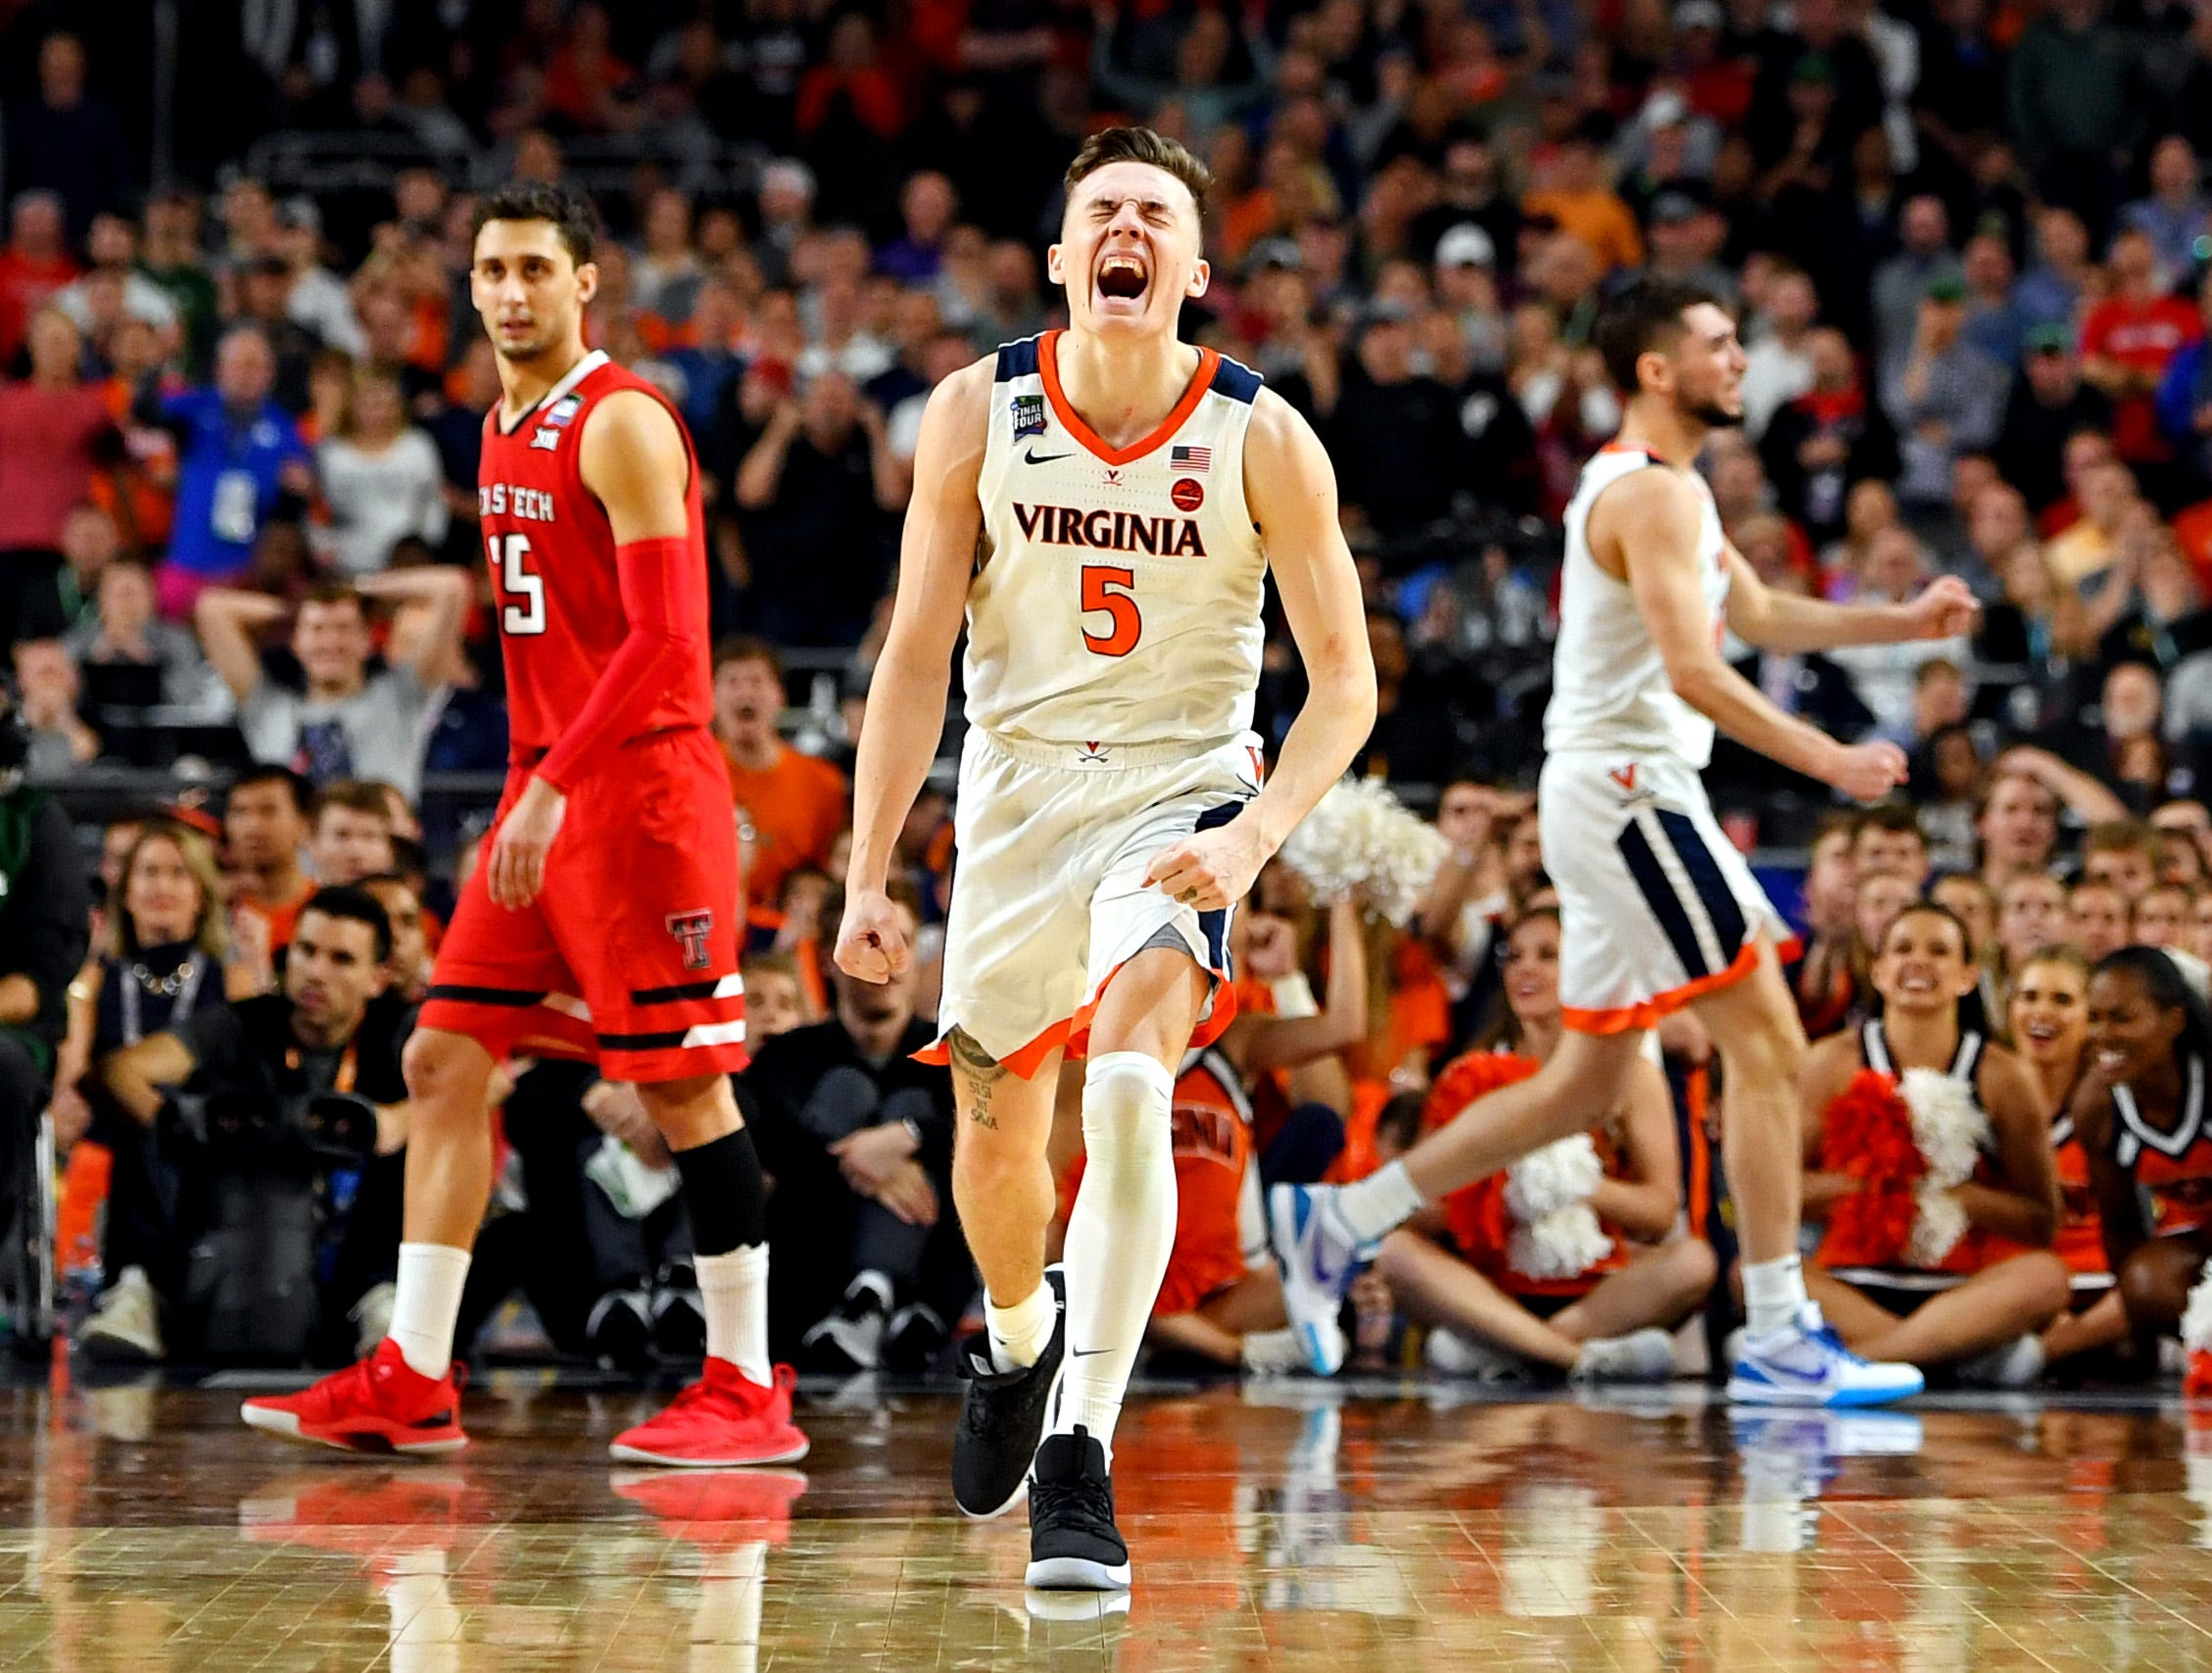 Apr 8, 2019; Minneapolis, MN, USA; Virginia Cavaliers guard Kyle Guy (5) celebrates during overtime against the Texas Tech Red Raiders in the championship game of the 2019 men's Final Four at US Bank Stadium. Mandatory Credit: Bob Donnan-USA TODAY Sports